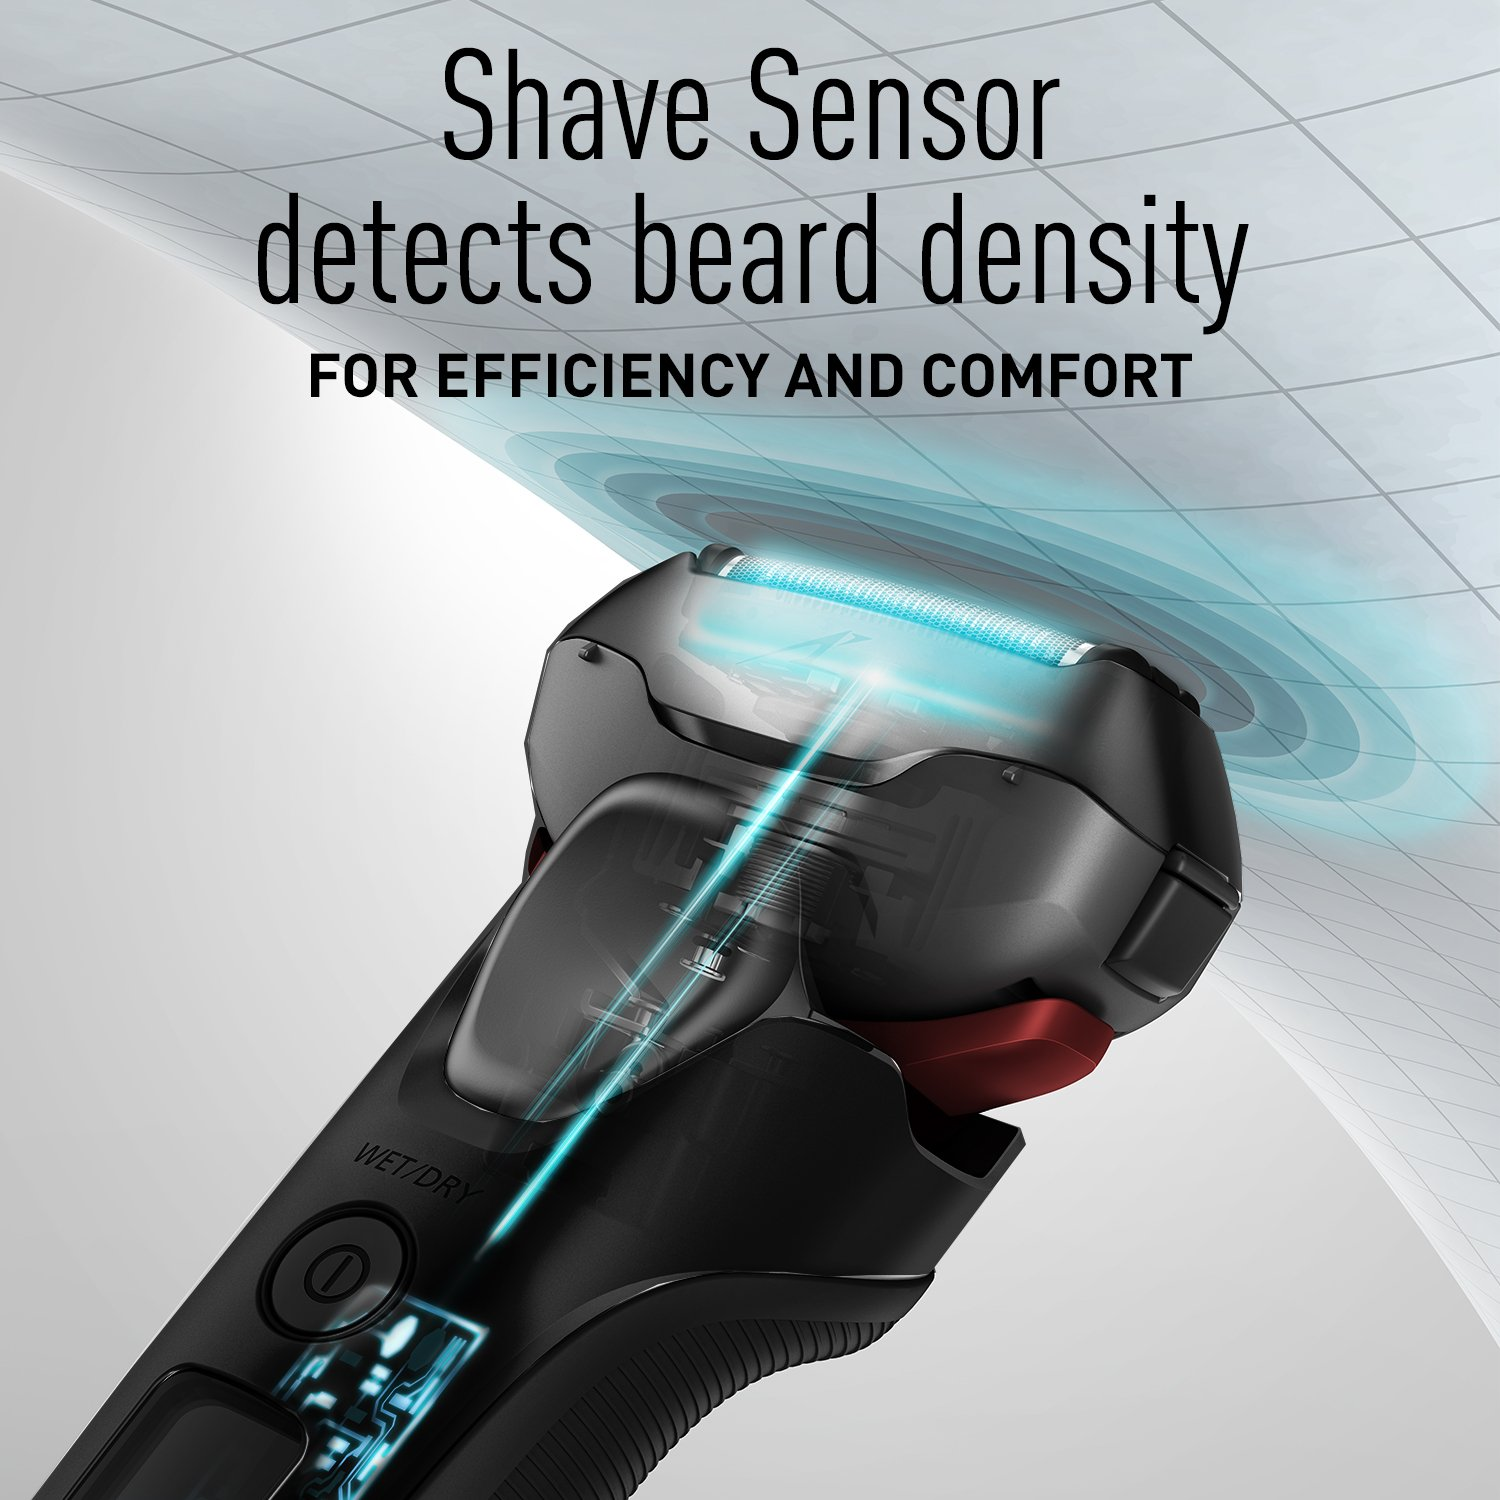 Panasonic ES-LT3N-K Arc3 3-Blade Electric Shaver with Built-In Pop-up Trimmer, Active Shave Sensor Technology and Wet Dry Operation